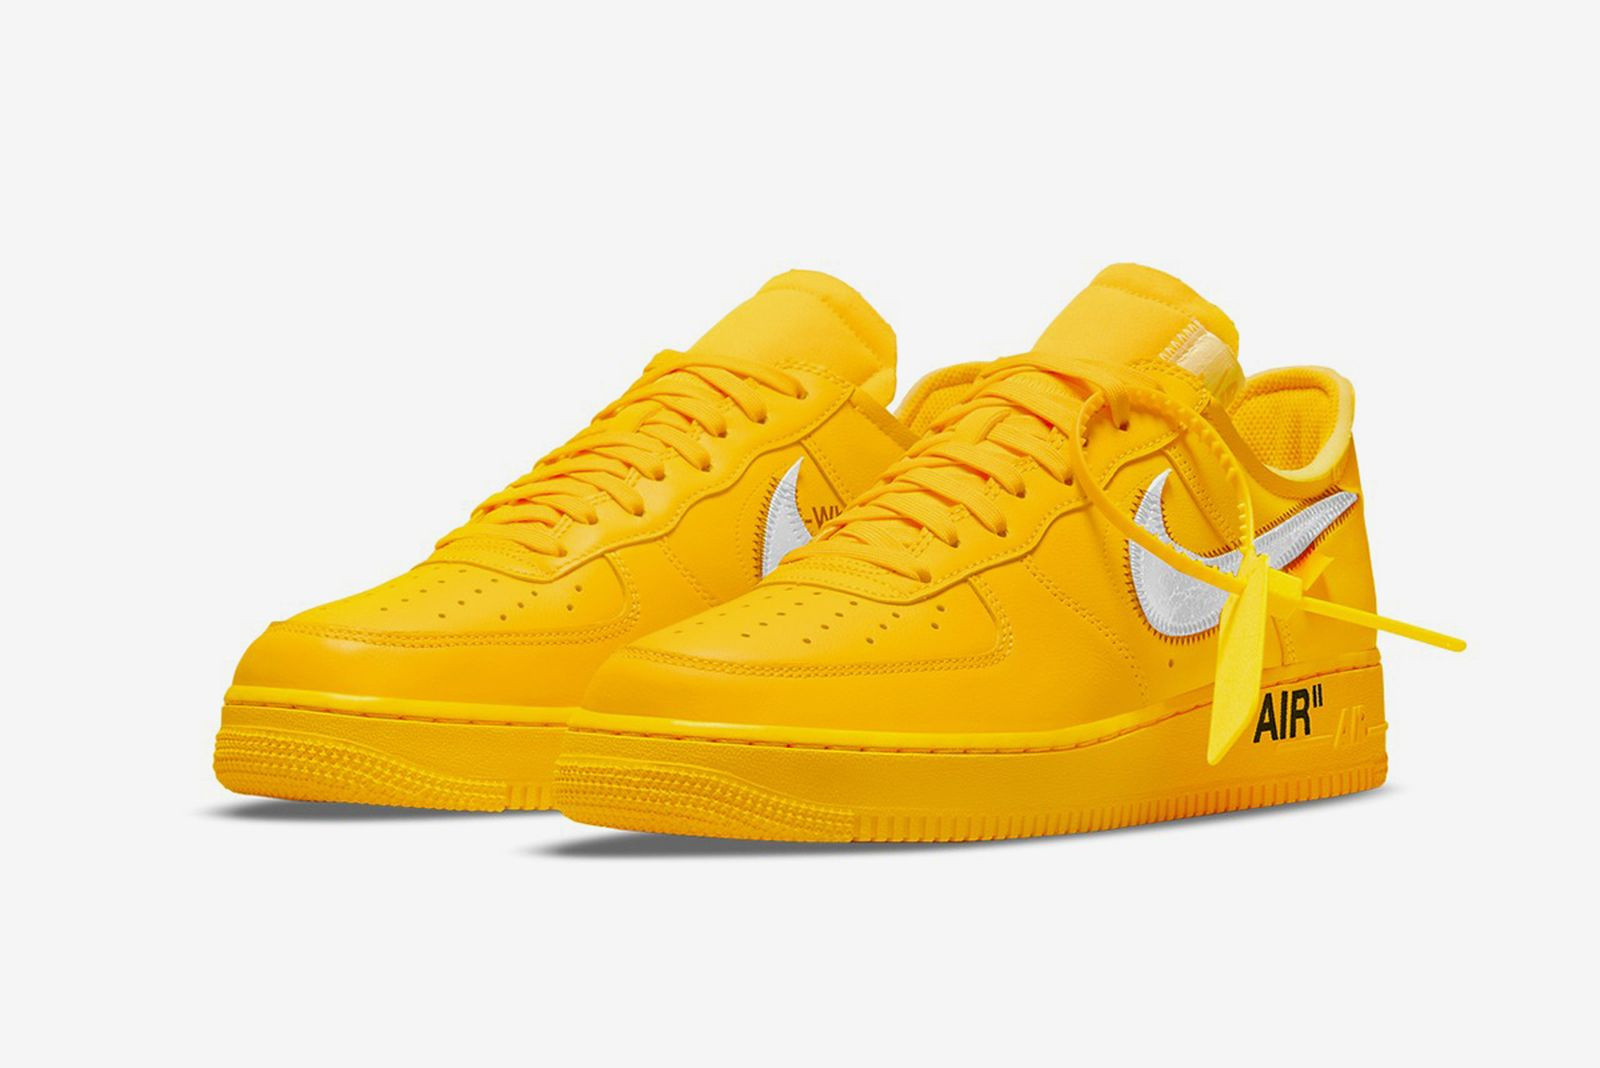 off-white-nike-air-force-1-canary-yellow-release-date-price-03